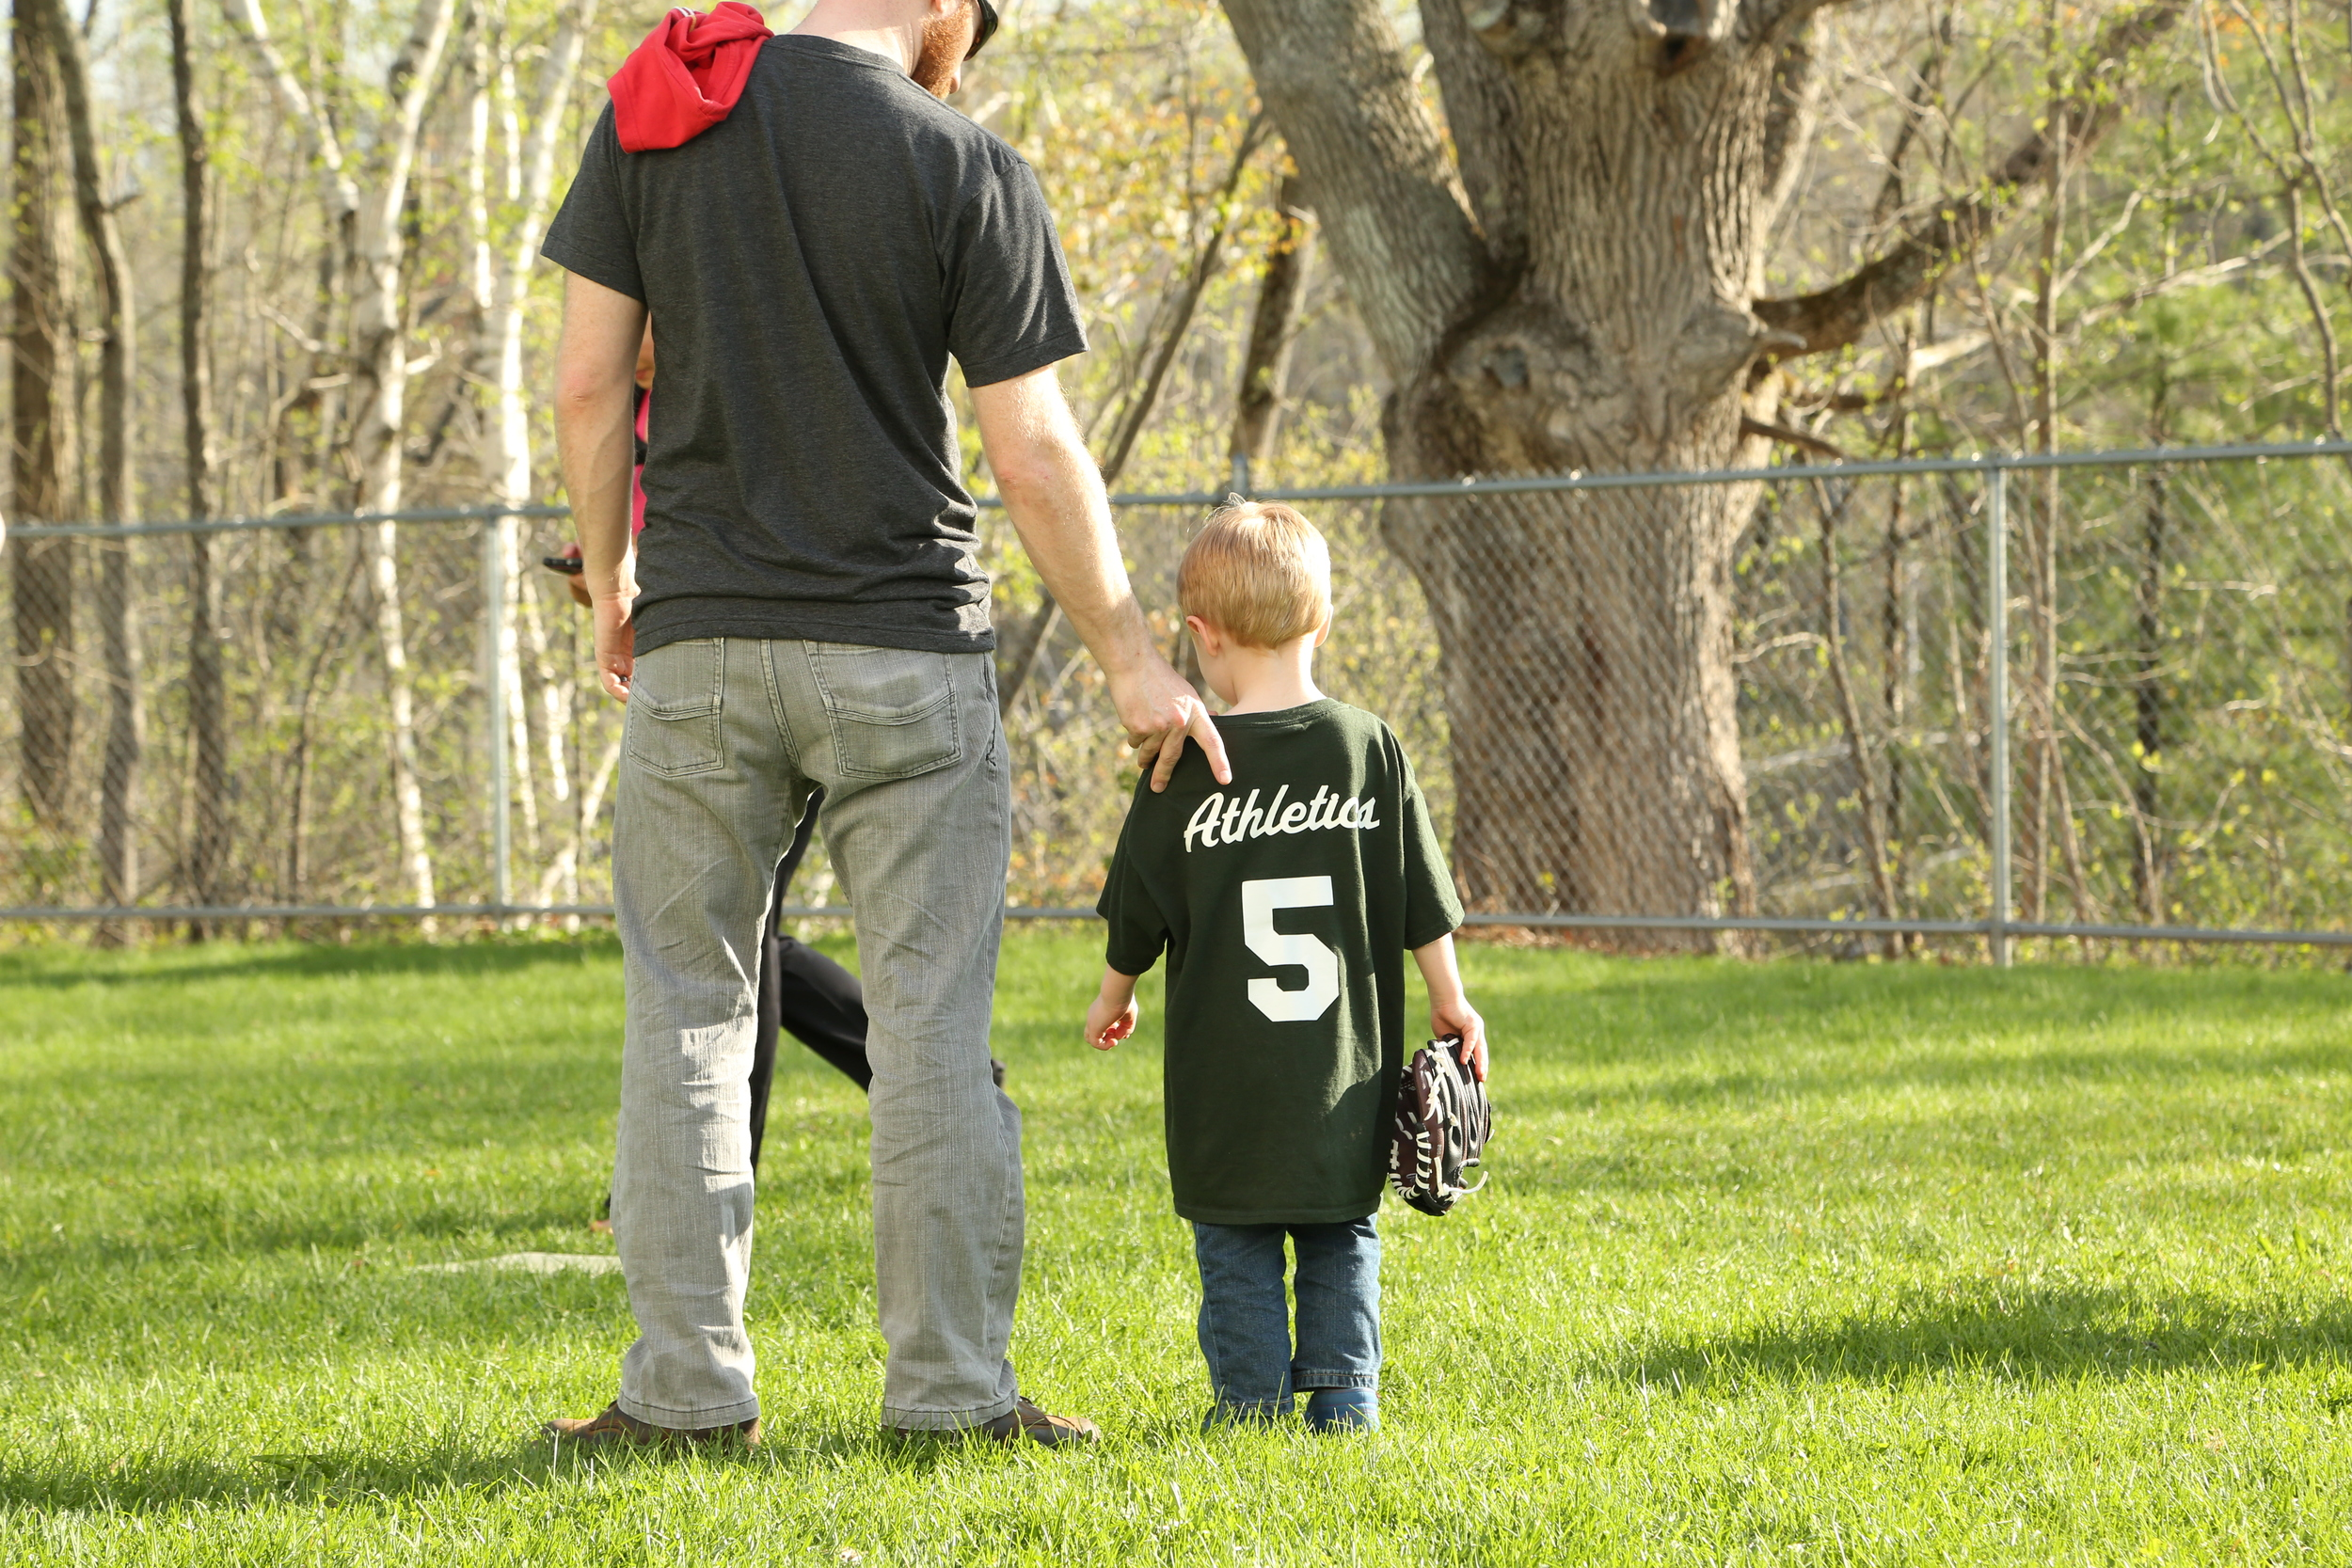 Then it was his turn in the outfield and everything went downhill from here.  A little coaching from Daddy...